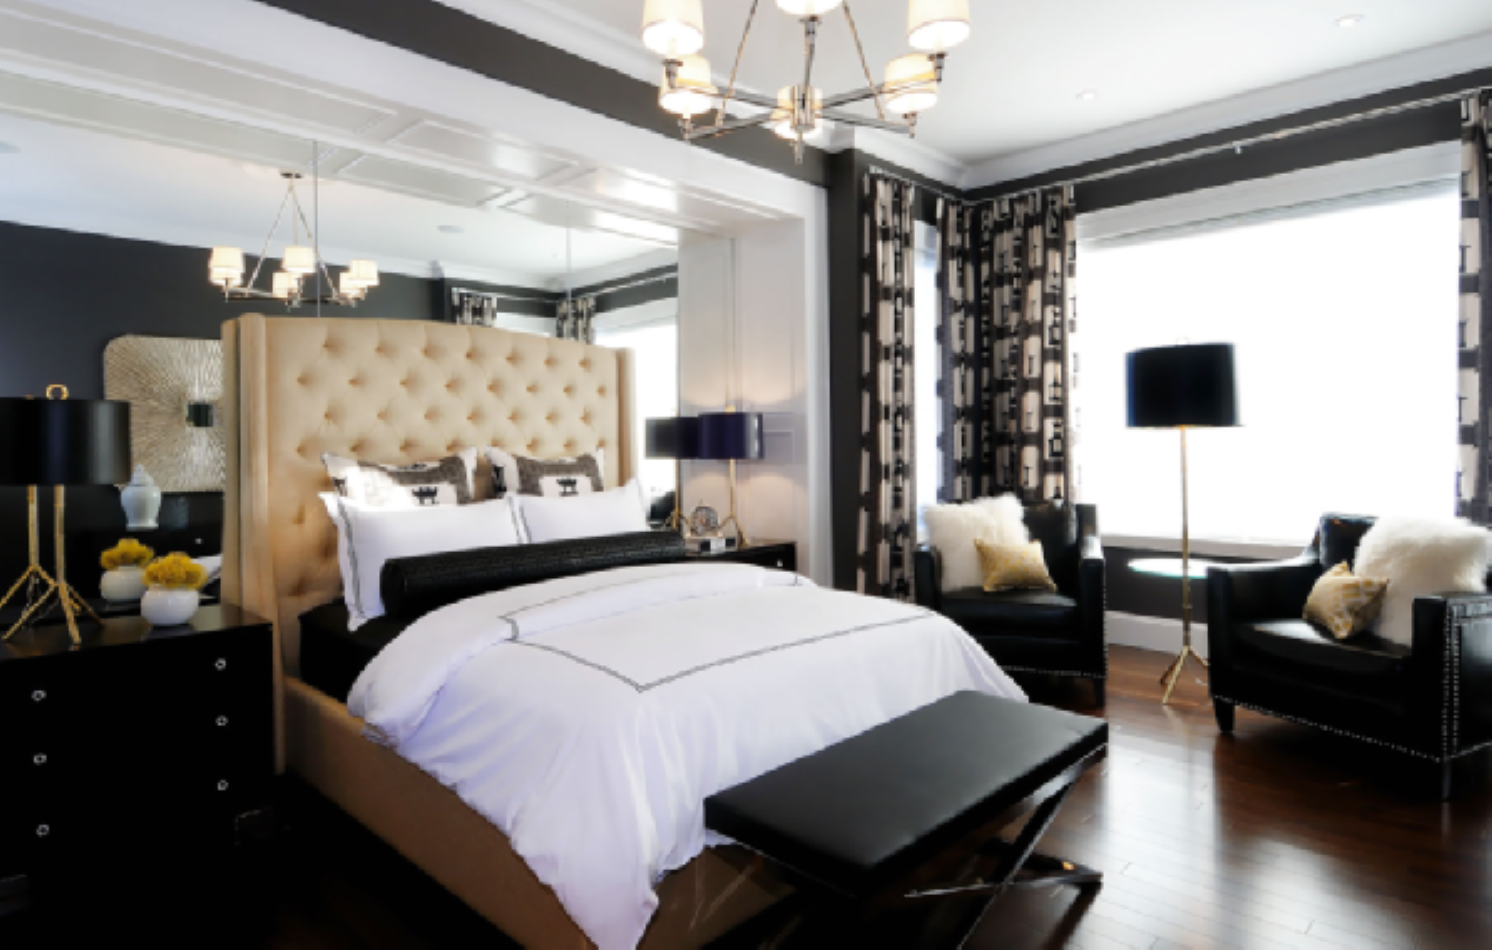 An exclusive bedroom interior design beautified by mirrored wall